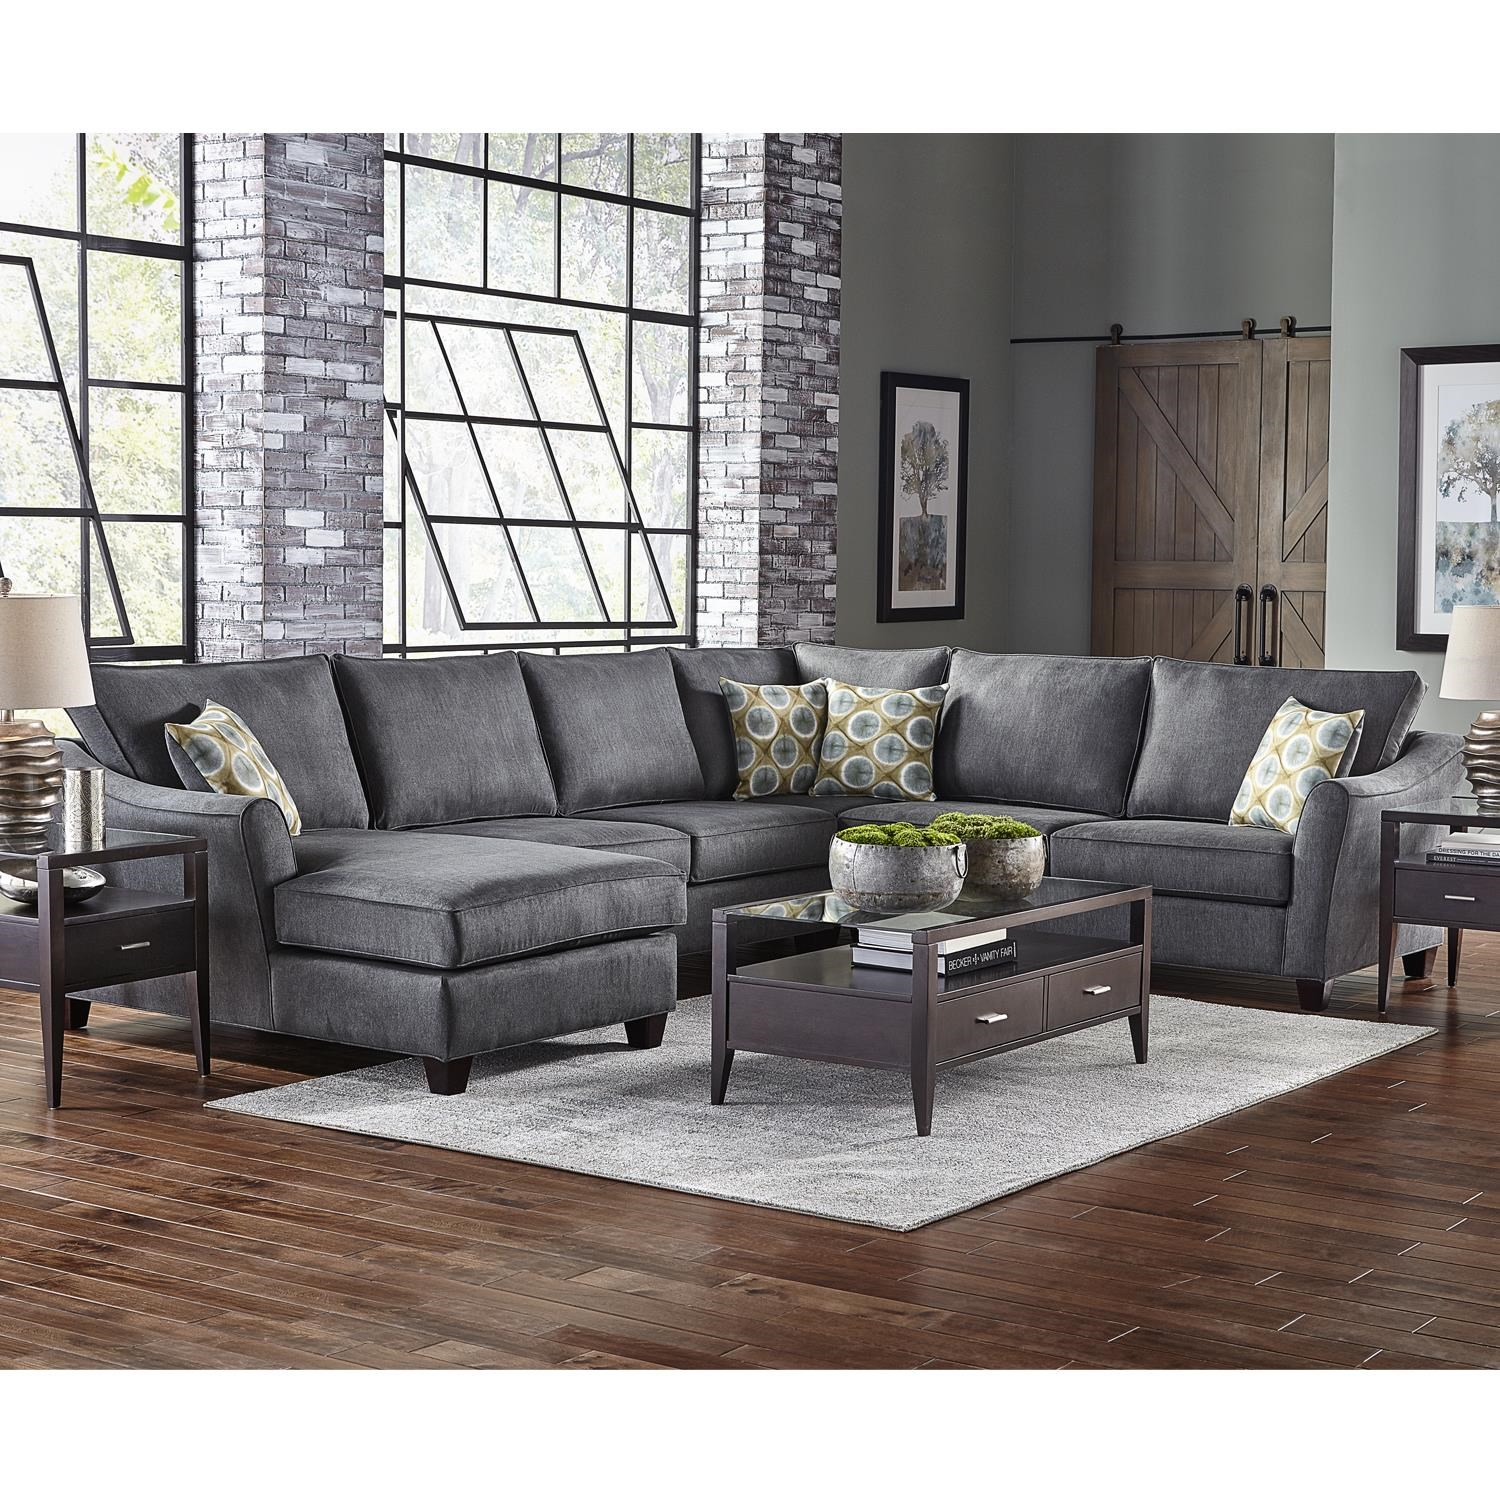 6 Seat Sectional with Left Facing Chaise